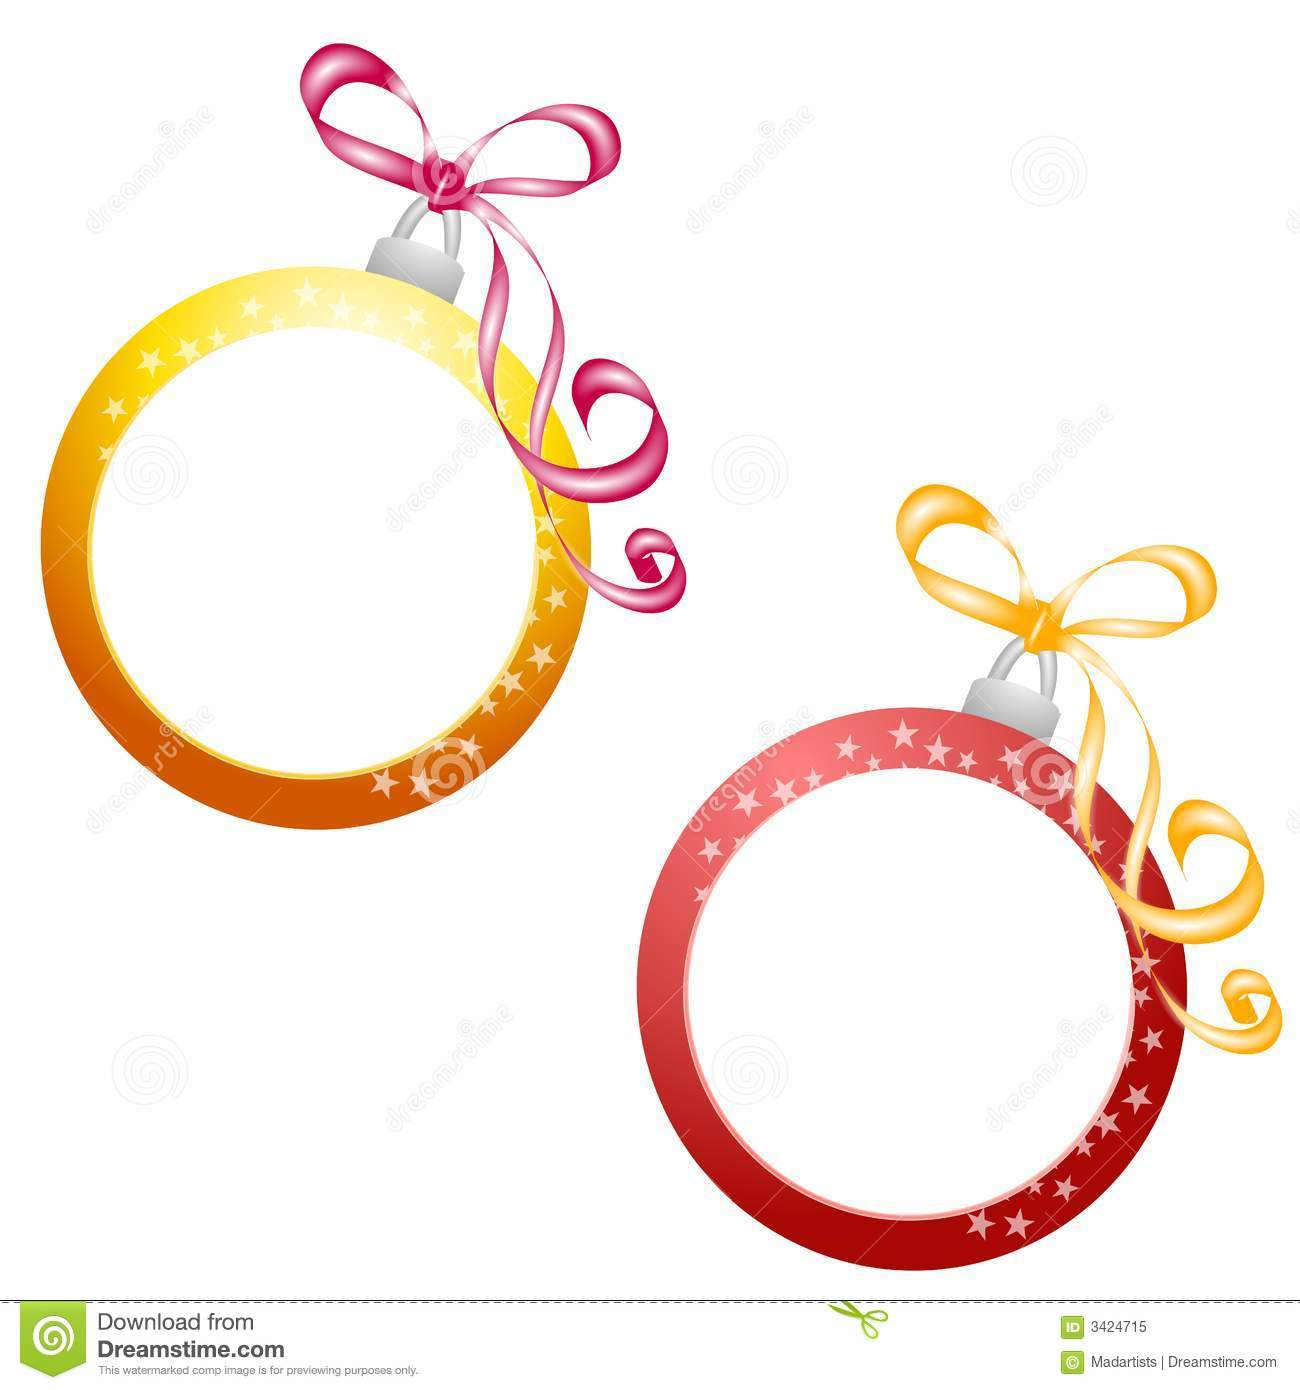 Christmas ornament frame stock illustration image of